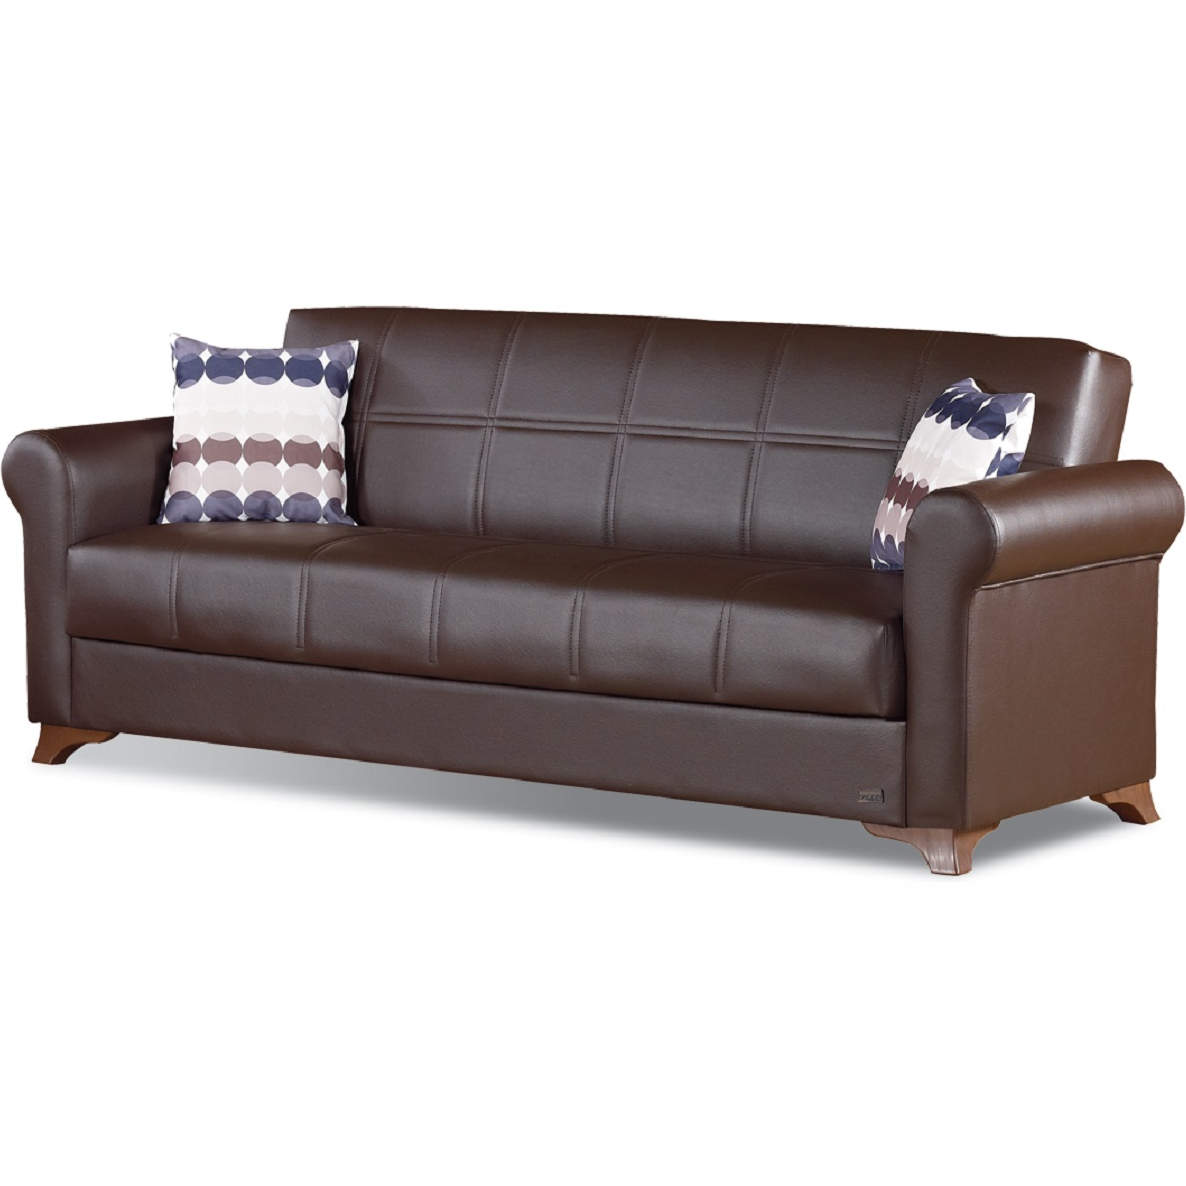 Fabulous Queens Sleeper Sofa In Dark Brown Leatherette By Empire Furniture Unemploymentrelief Wooden Chair Designs For Living Room Unemploymentrelieforg